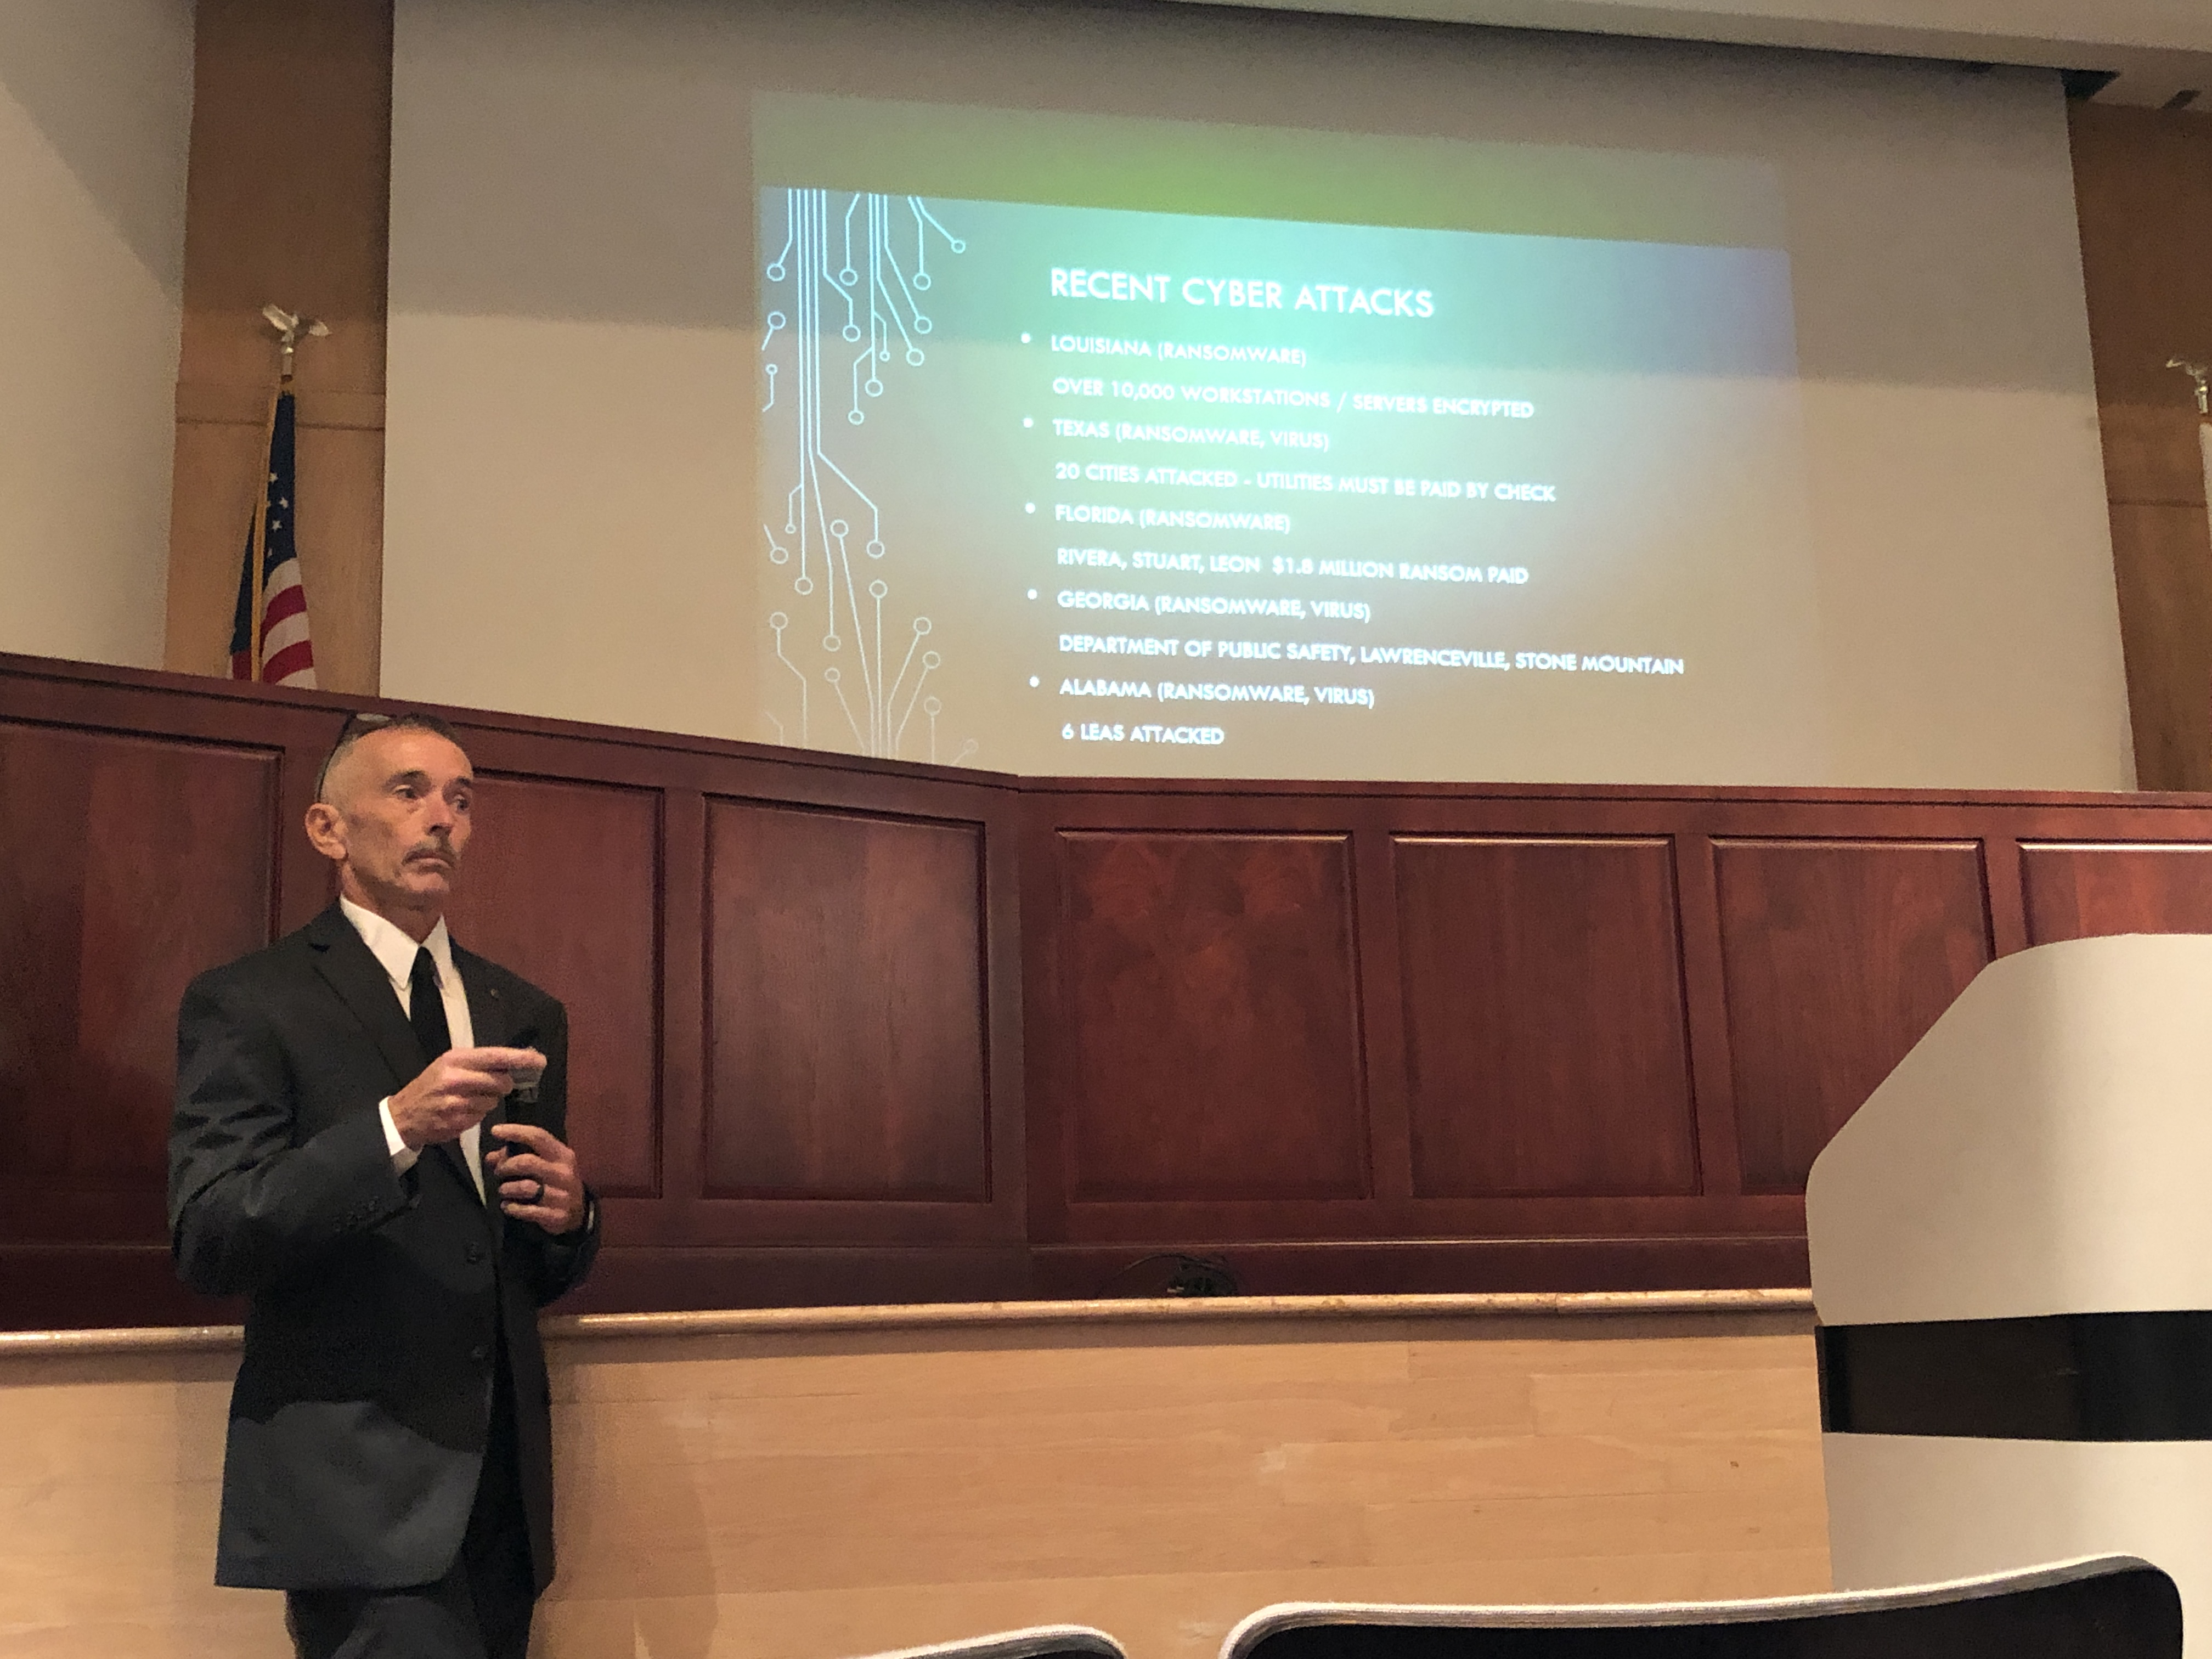 Alabama superintendents warned cyberattacks on the rise